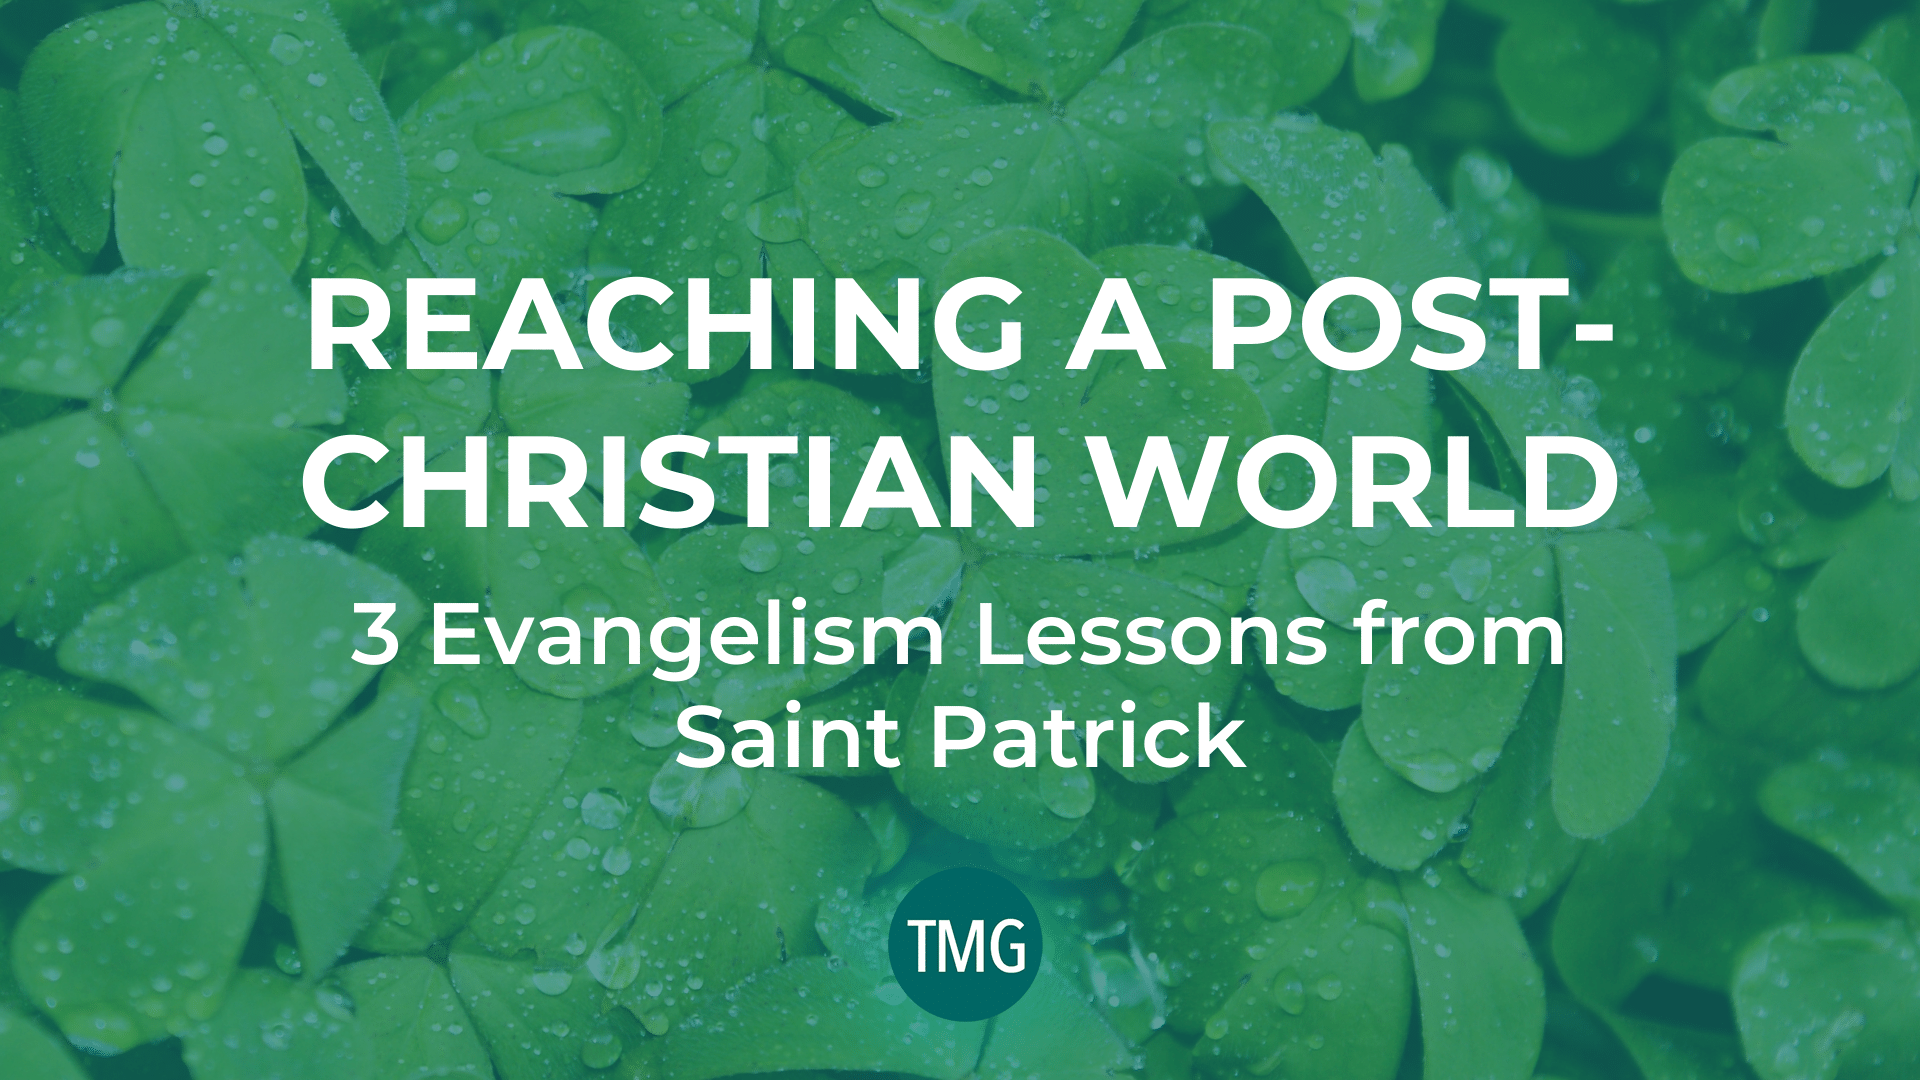 reaching-a-post-christian-world-three-evangelism-lessons-from-saint-patrick-header-image